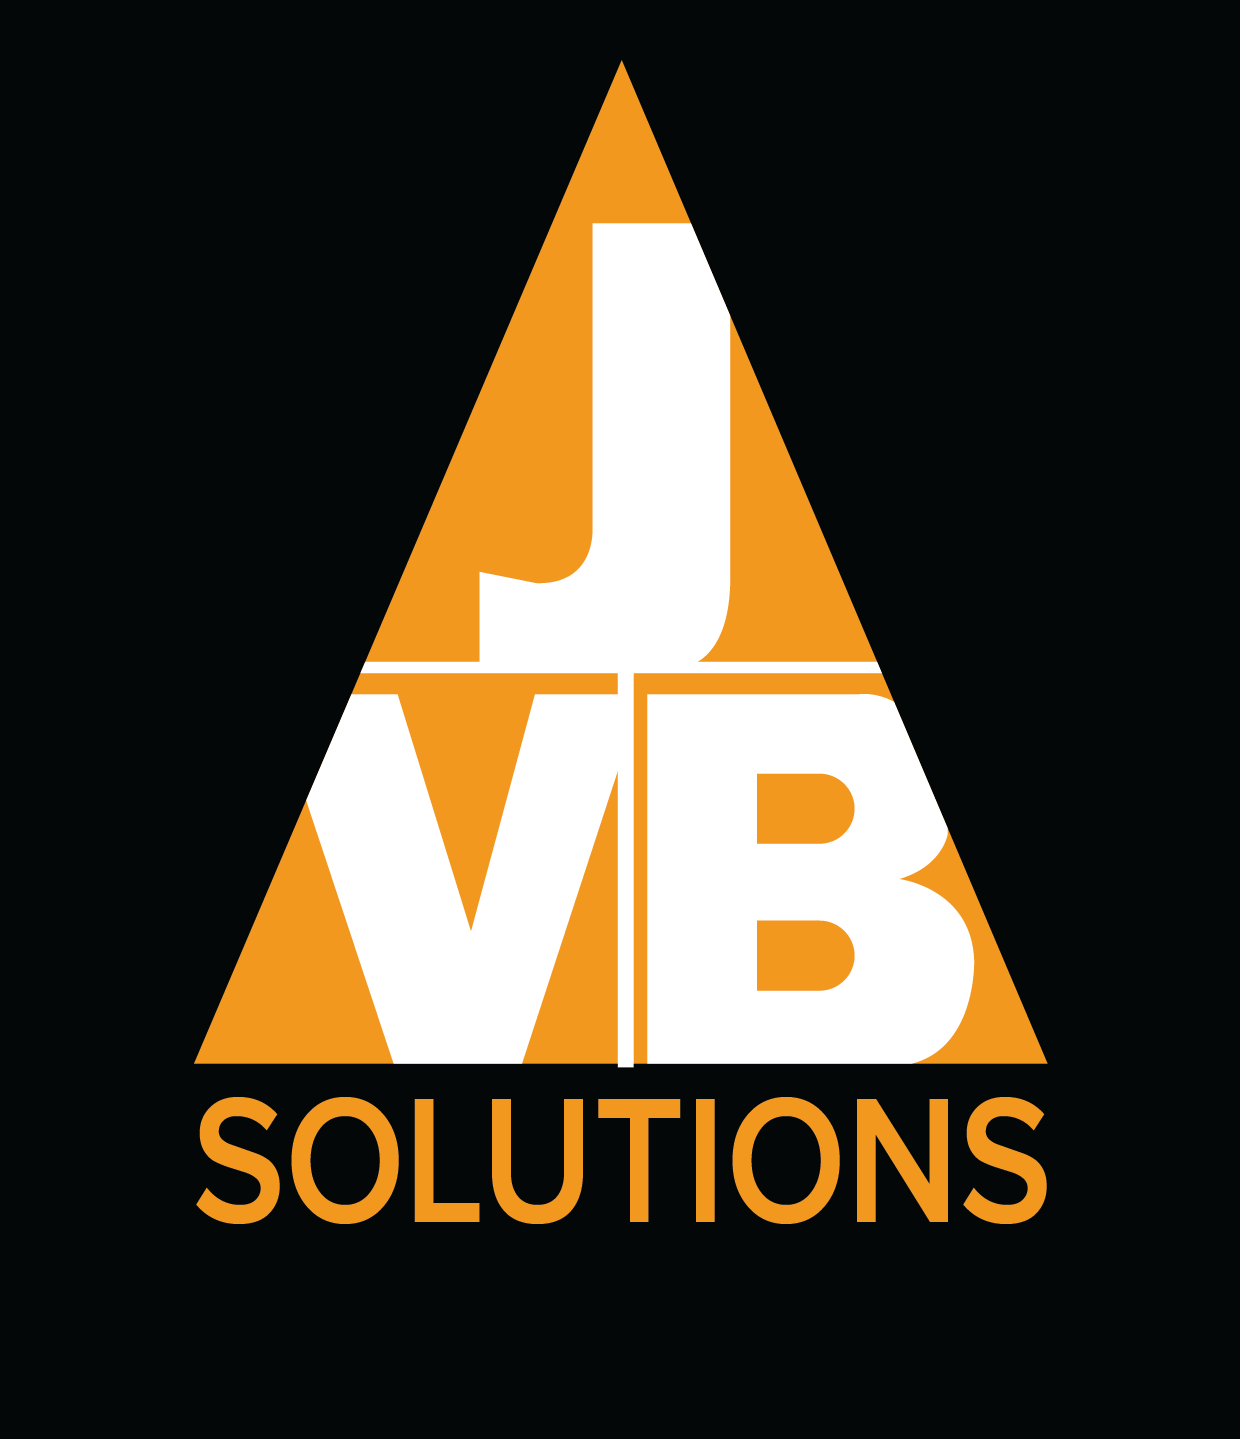 JVB Solutions